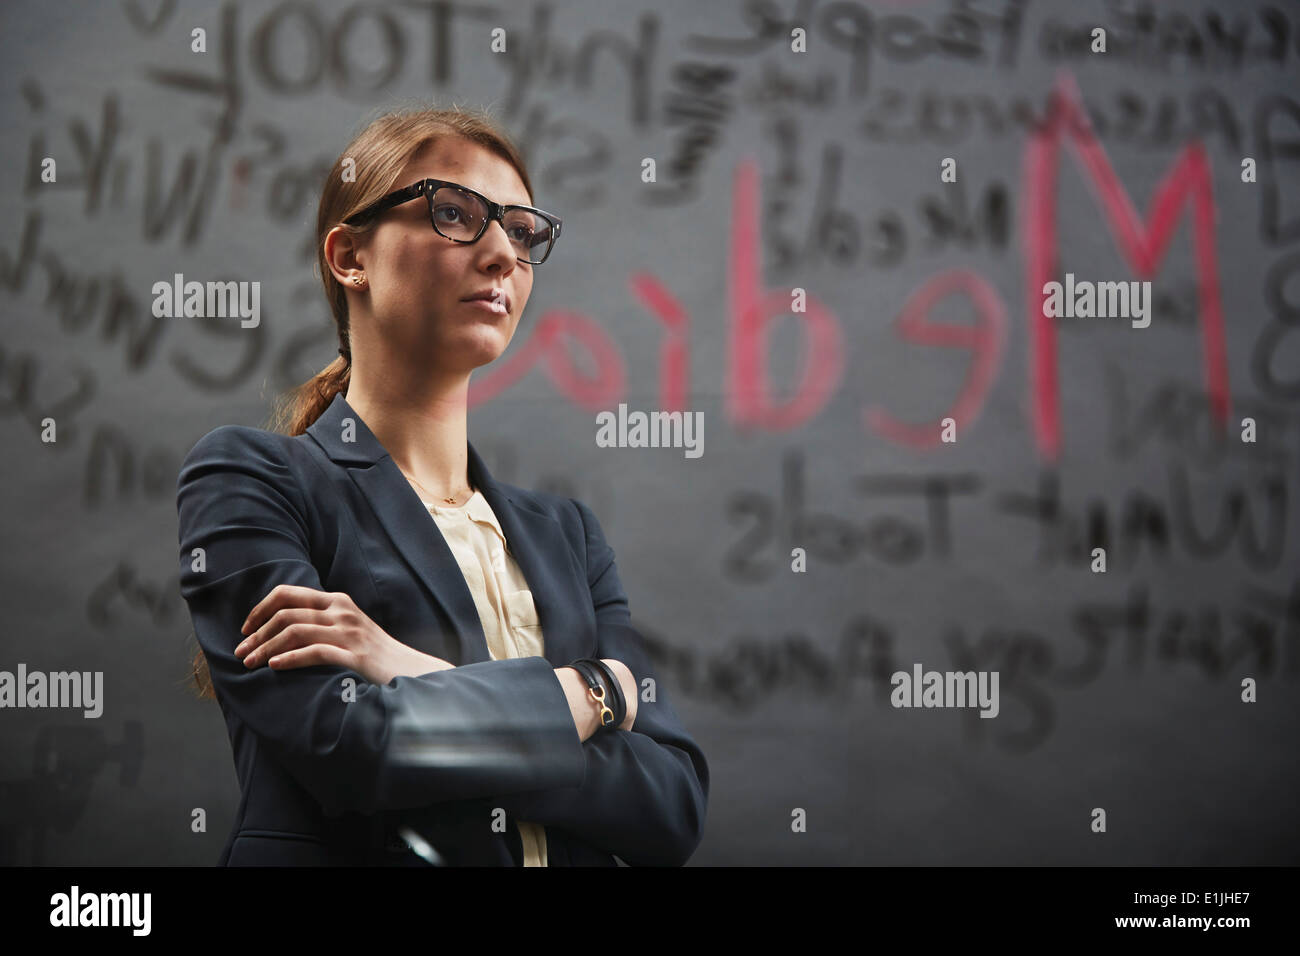 Portrait of businesswoman wearing jacket with writing - Stock Image